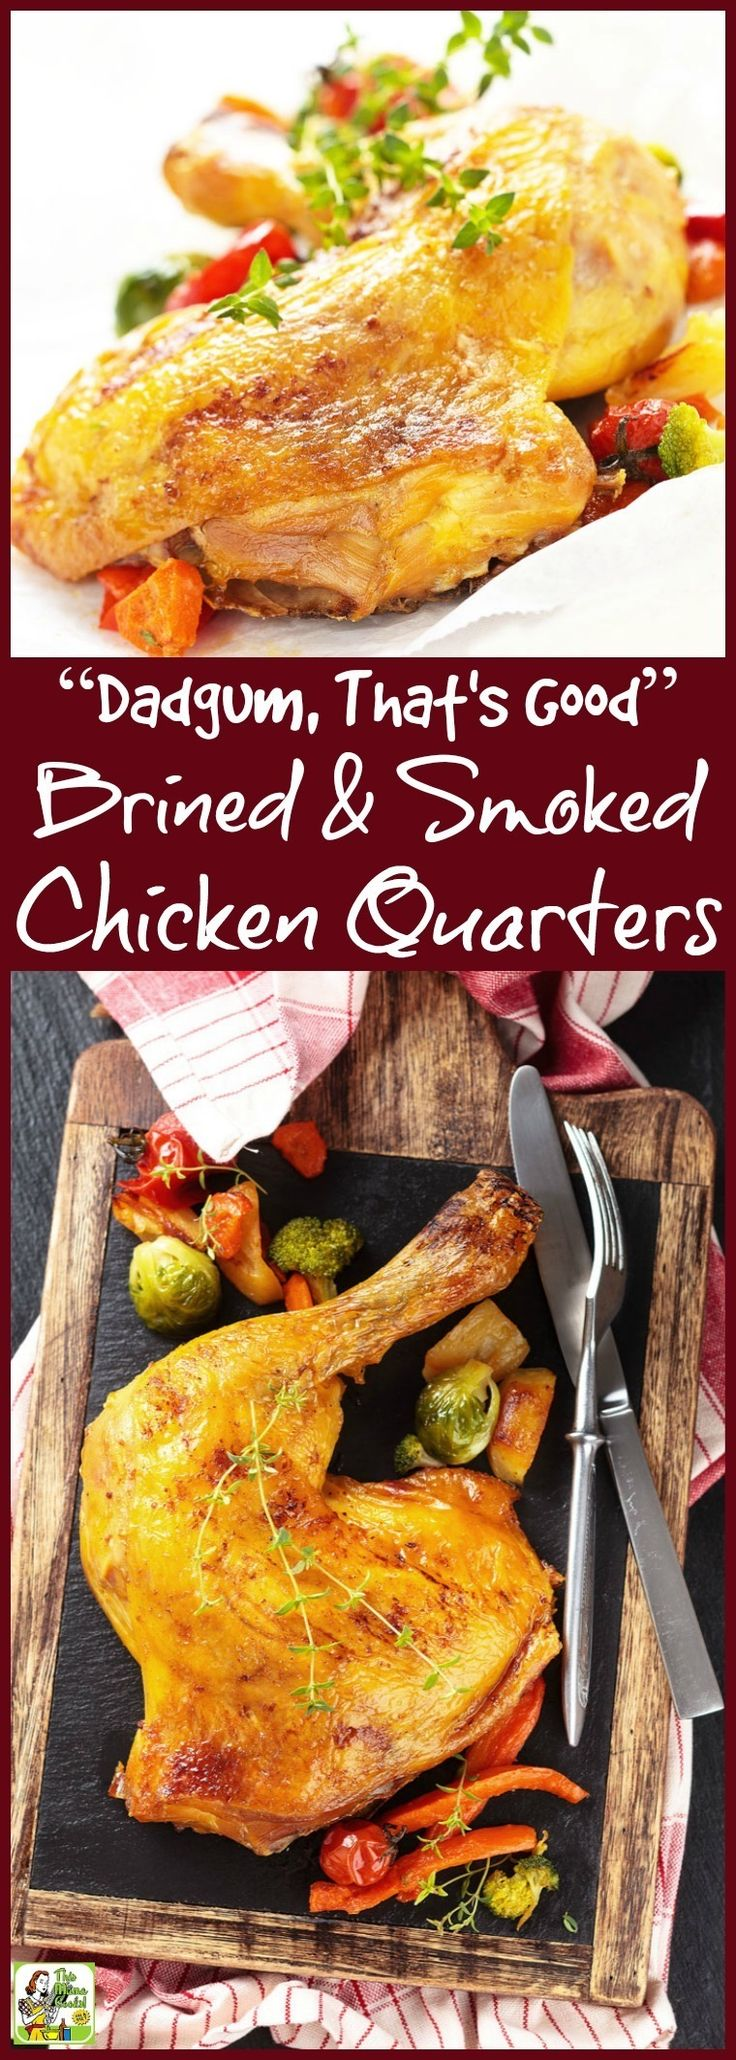 "Love to smoke chicken? Here's the ultimate chicken brining recipe that's super easy to do. ""Dadgum, That's Good"" Brined & Smoked Chicken Quarters. This simple recipe makes the chicken leg quarters super juicy and delicious!"